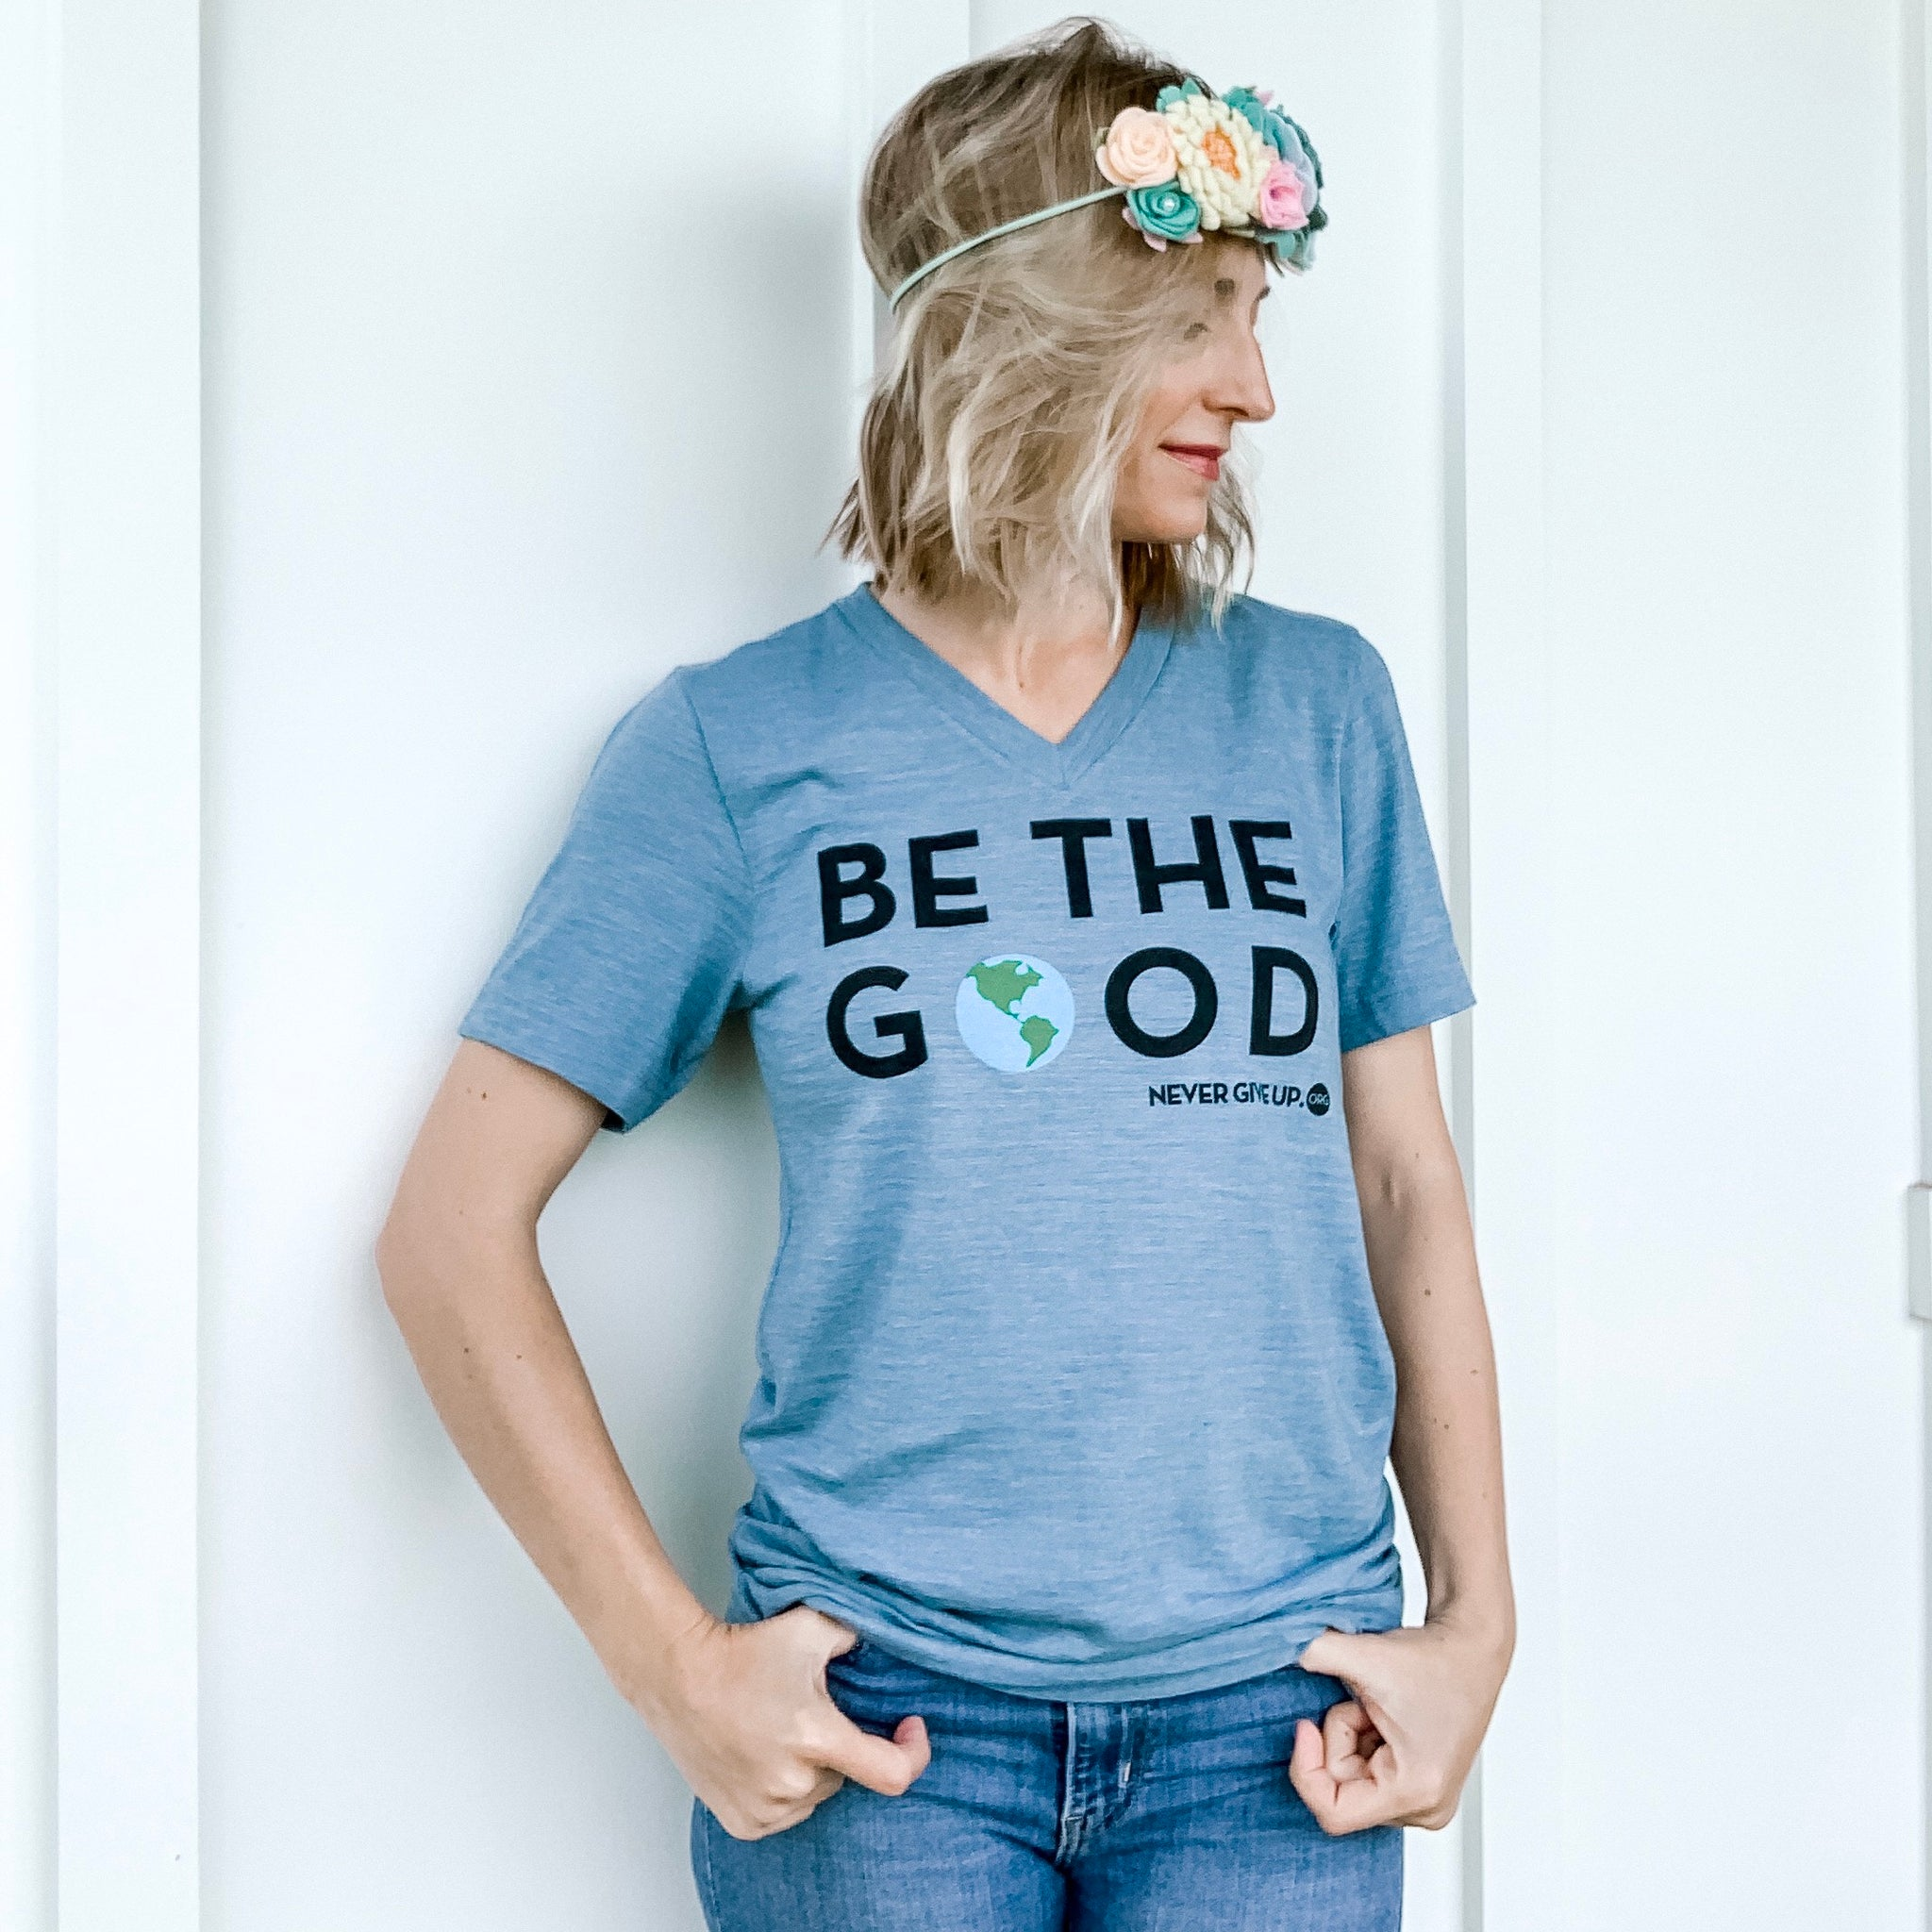 BE THE GOOD. UNISEX VNECK